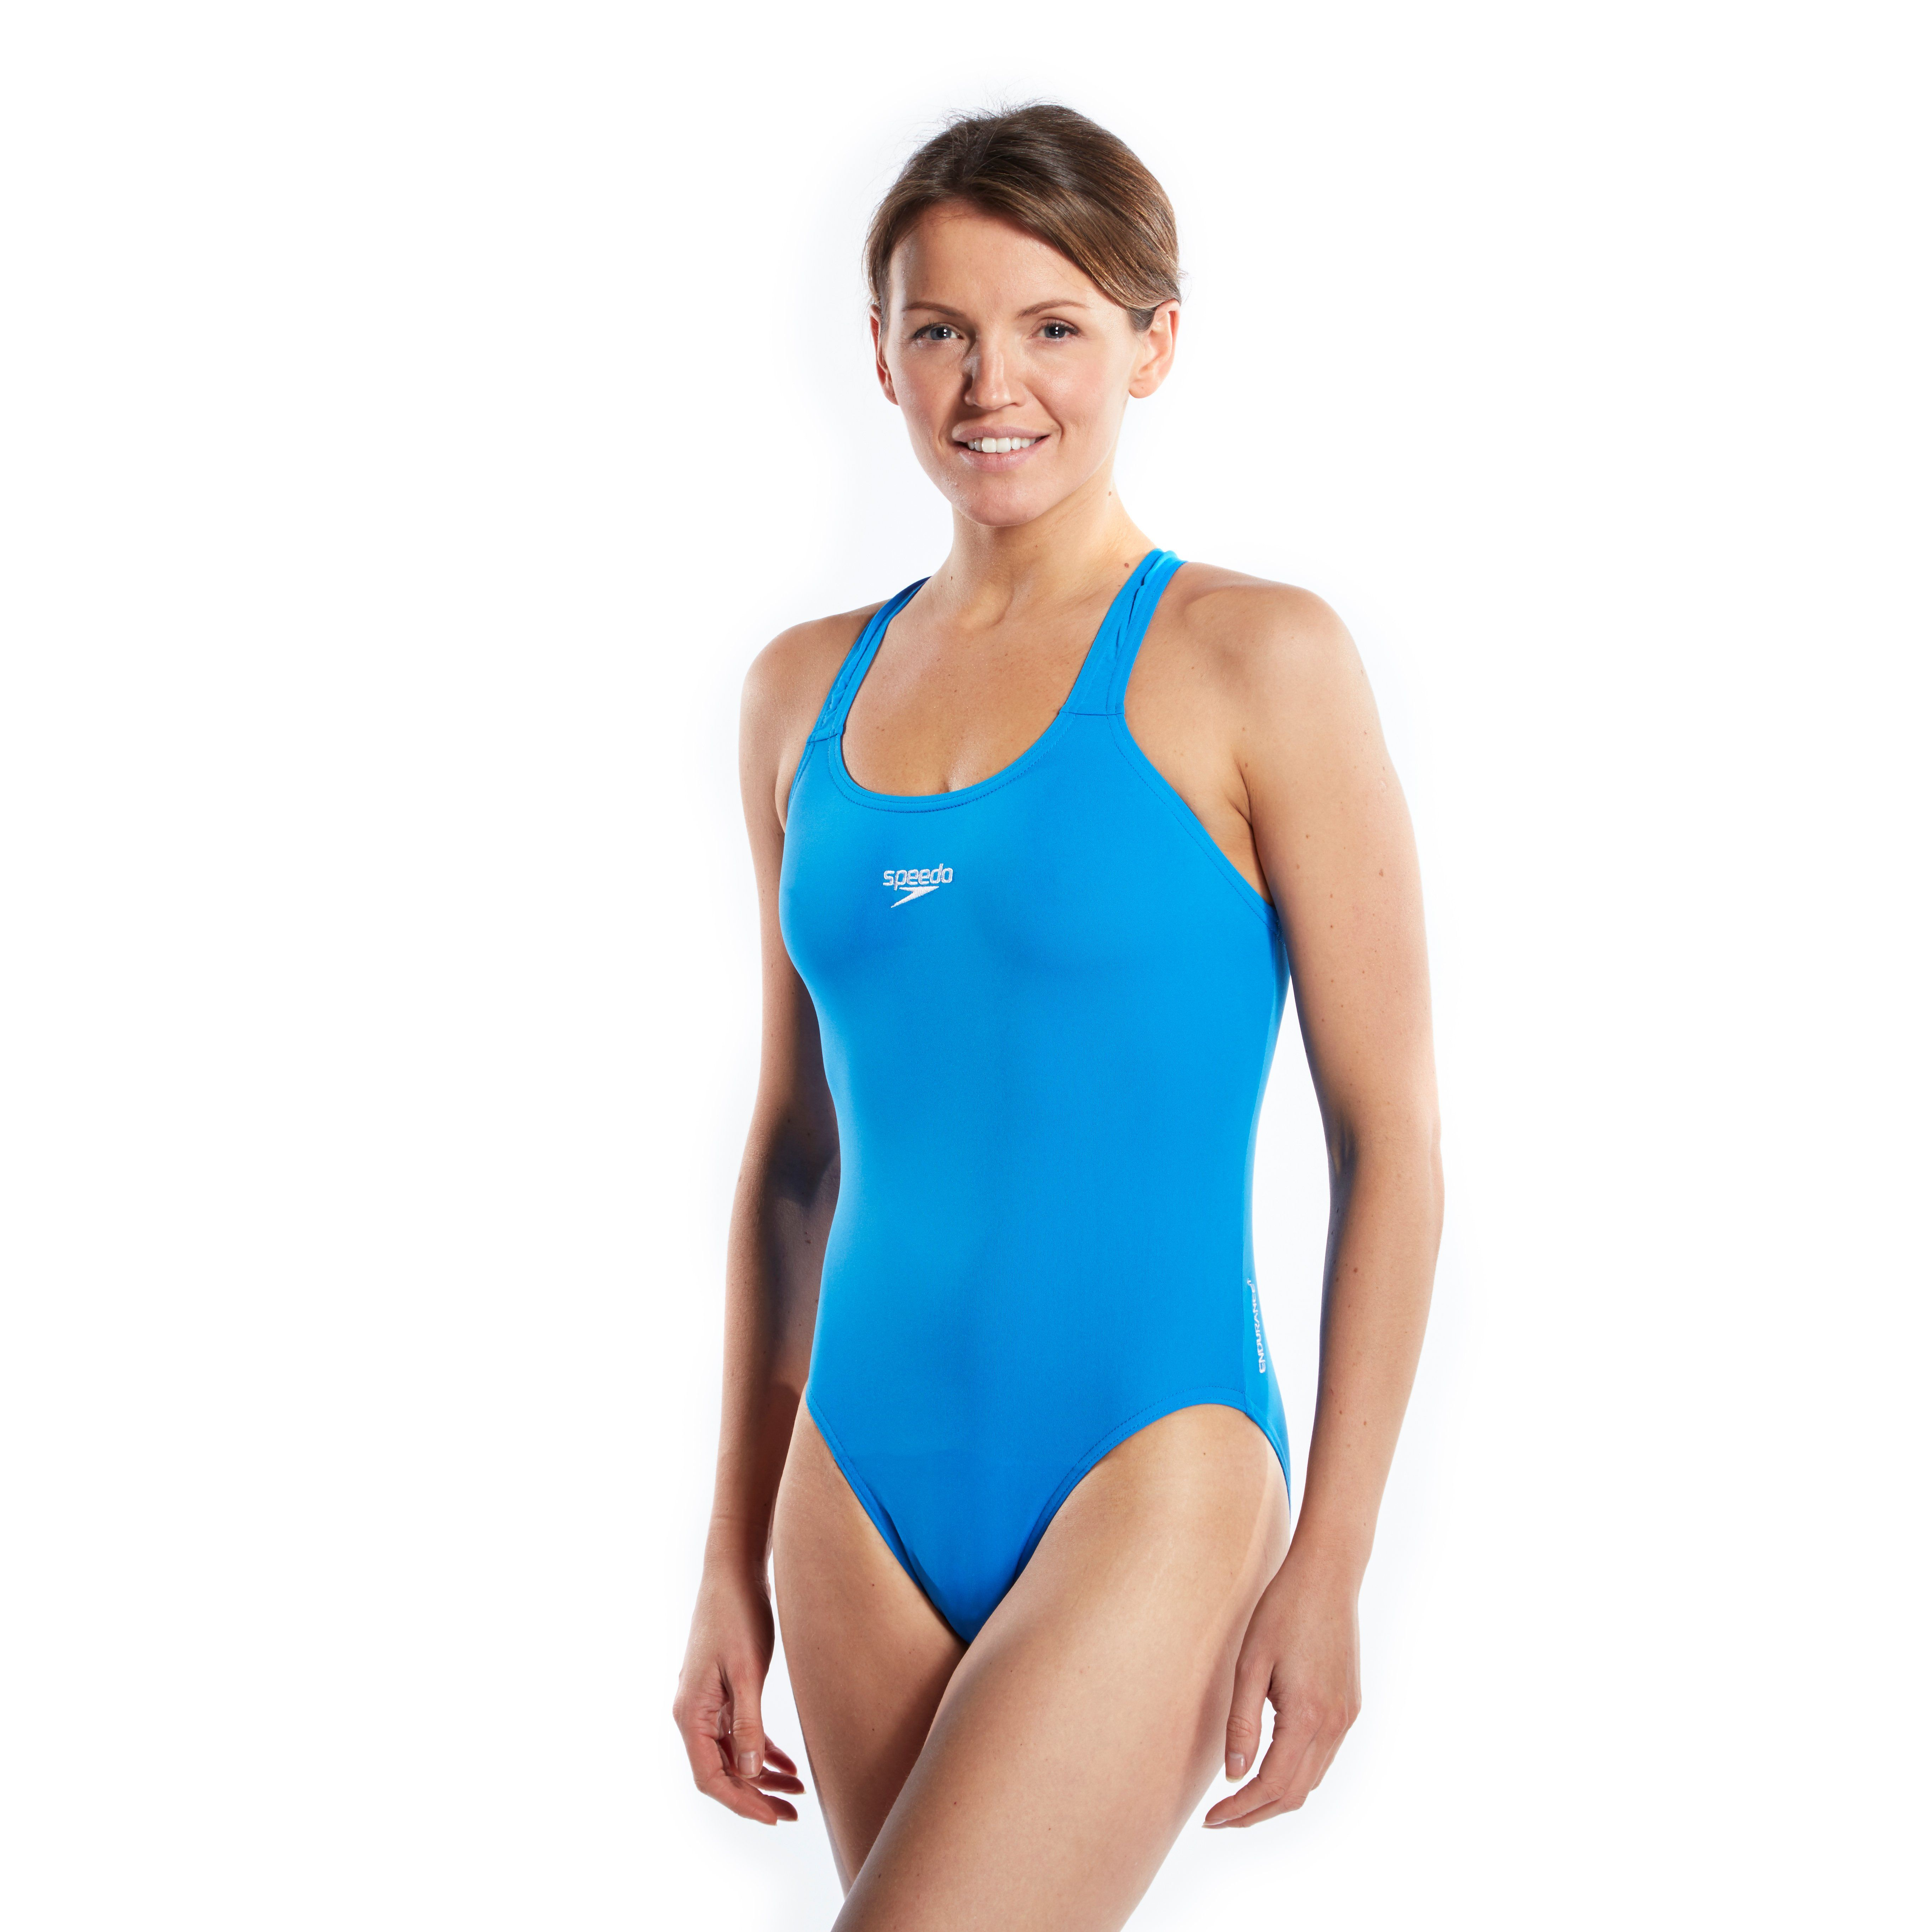 SPEEDO Women's Endurance Essential Swimsuit